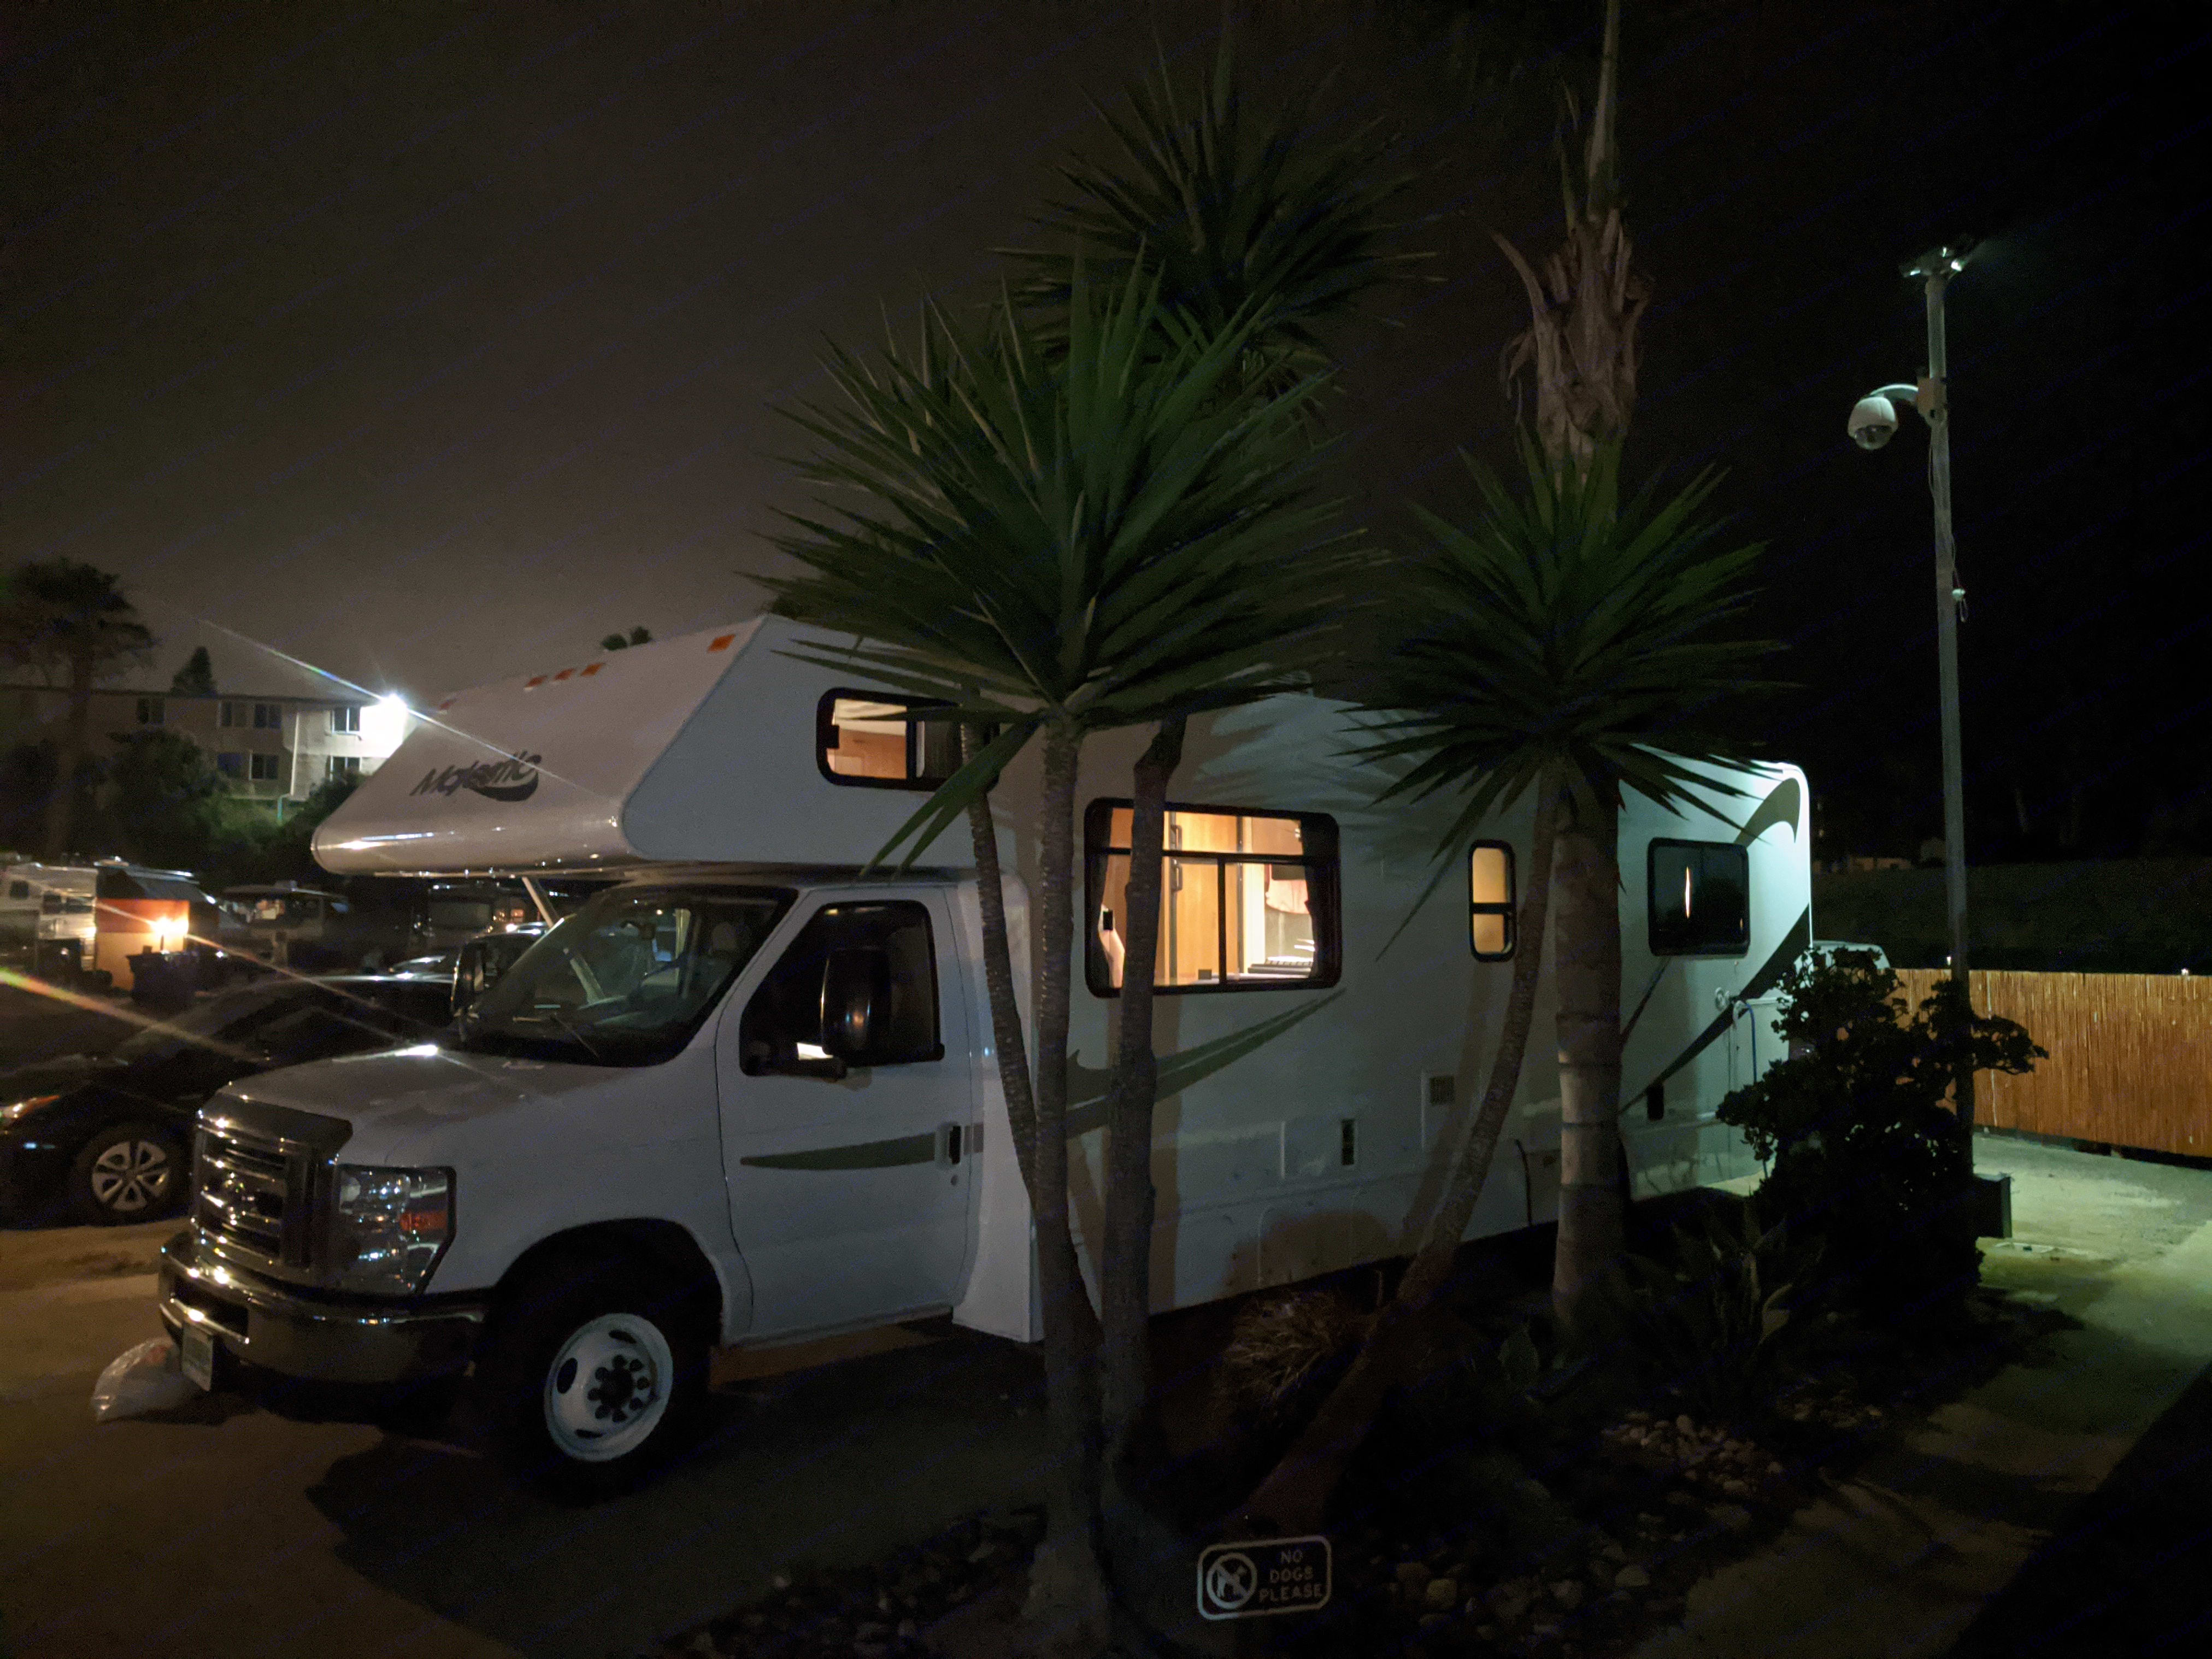 Cool nighttime photo! :). Thor Motor Coach Four Winds Majestic 2015